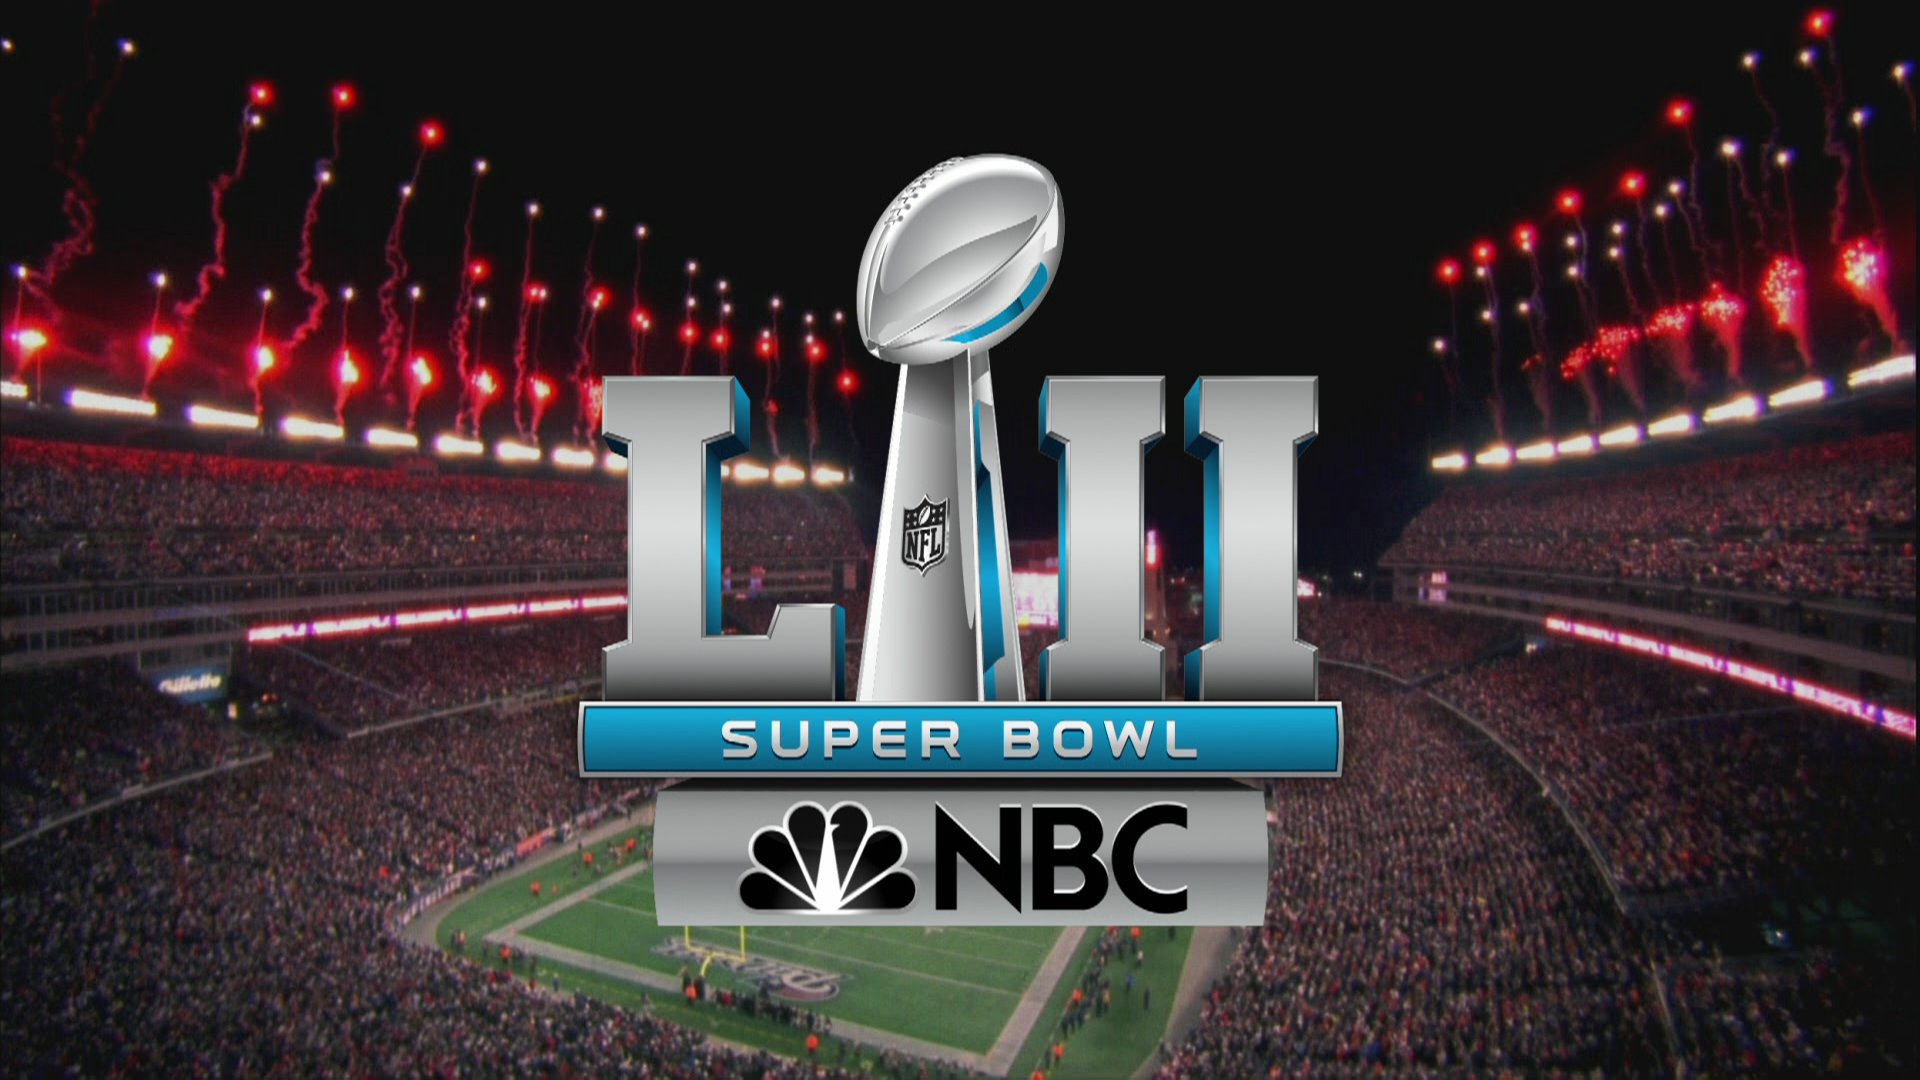 Cbs sports super bowl contest sweepstakes